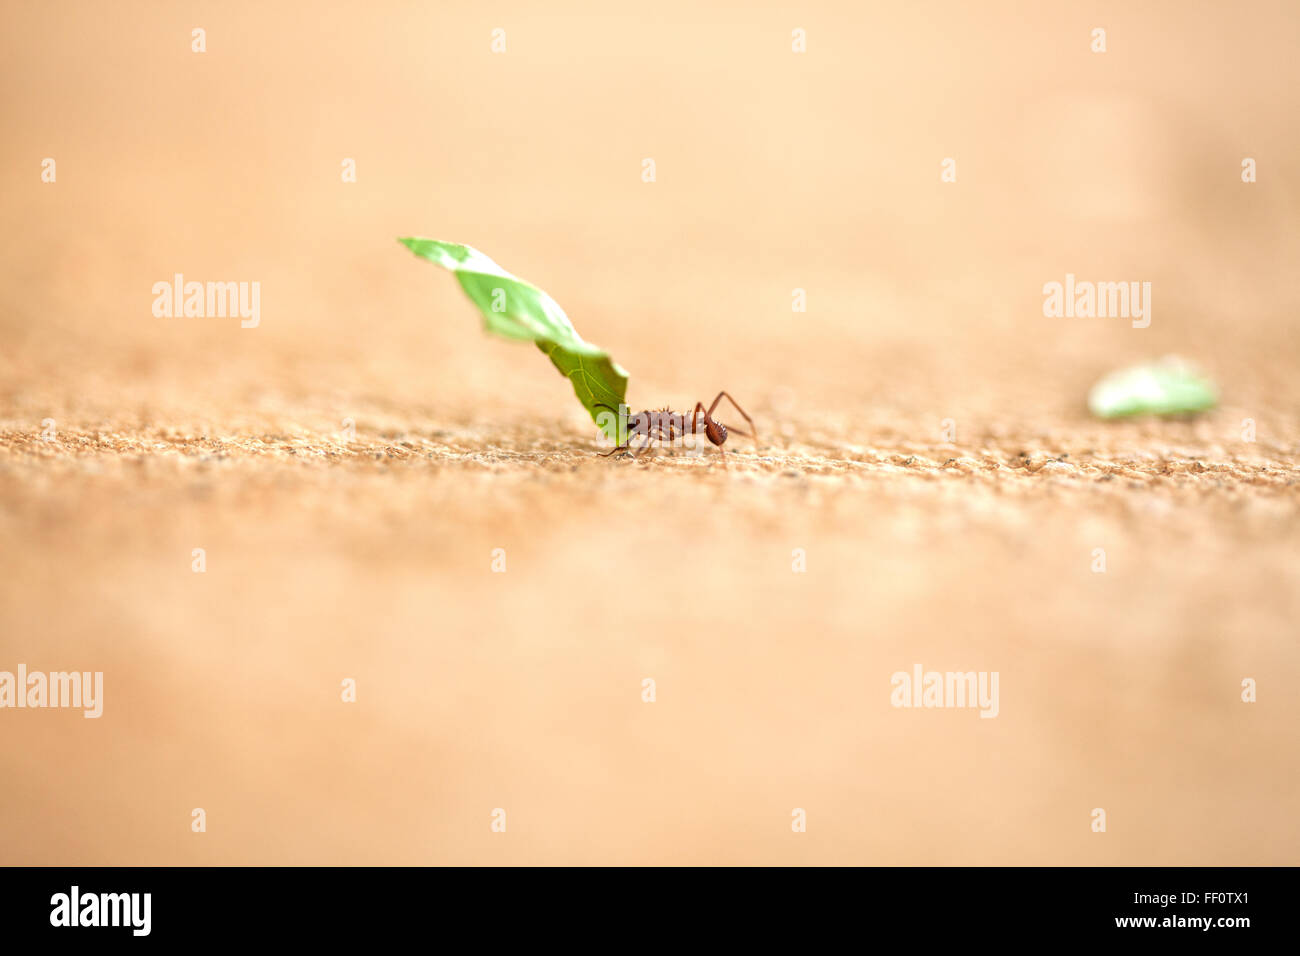 A close-up of a single leaf cutter ant carrying a piece of green leaf across a textured surface. - Stock Image